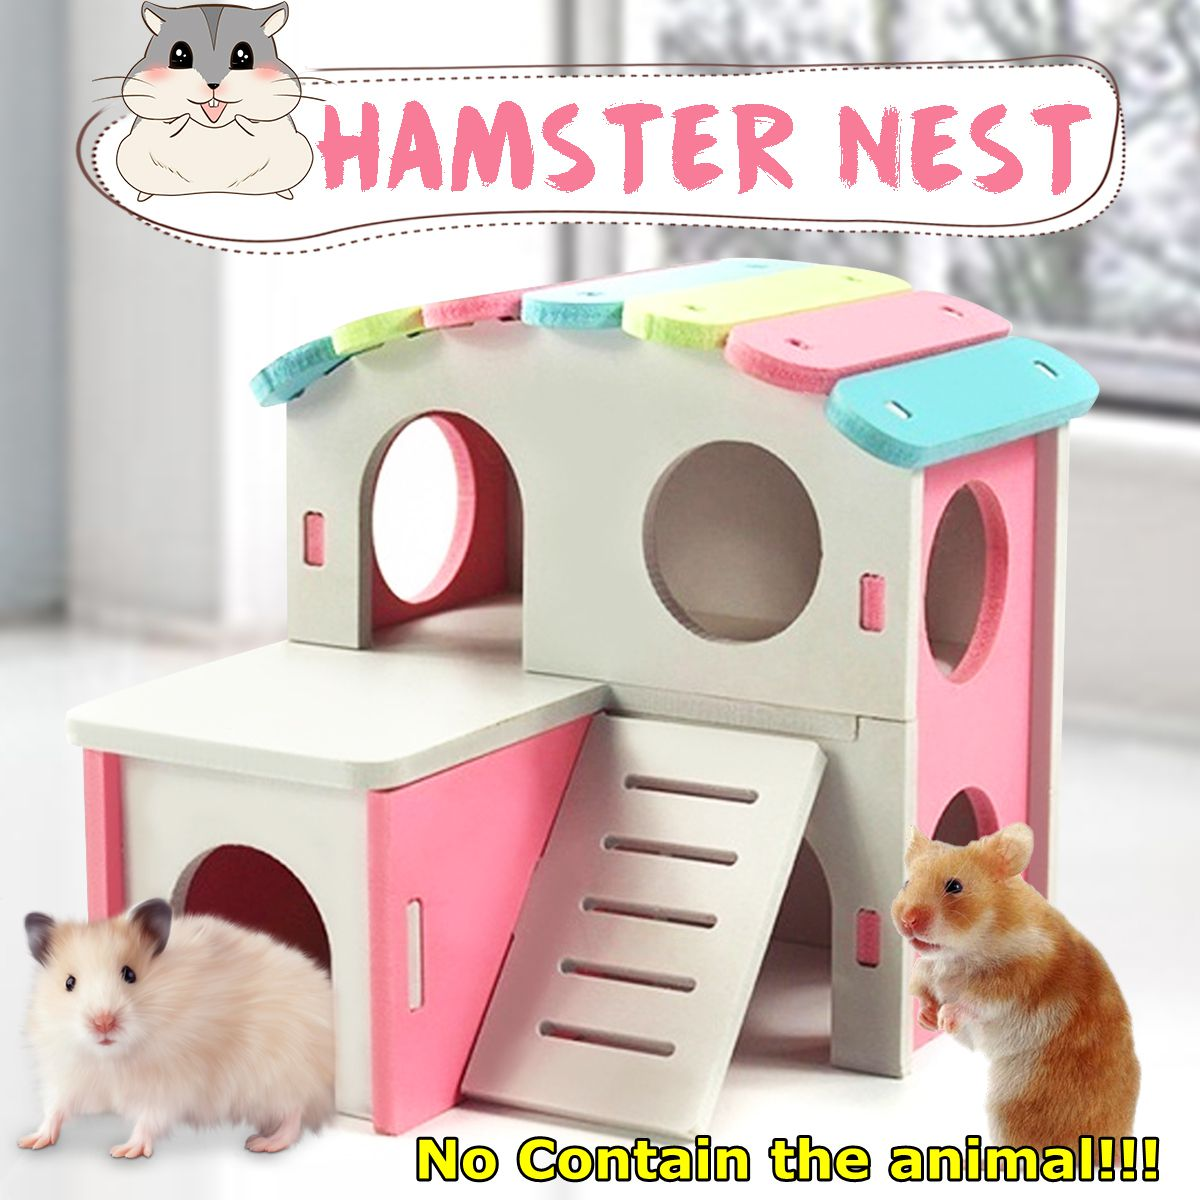 Pet Castle Toy Pet House Viewing Deck Ladder Pet Products 1 PC Hamster House Hamster Nest Wooden Seesaw